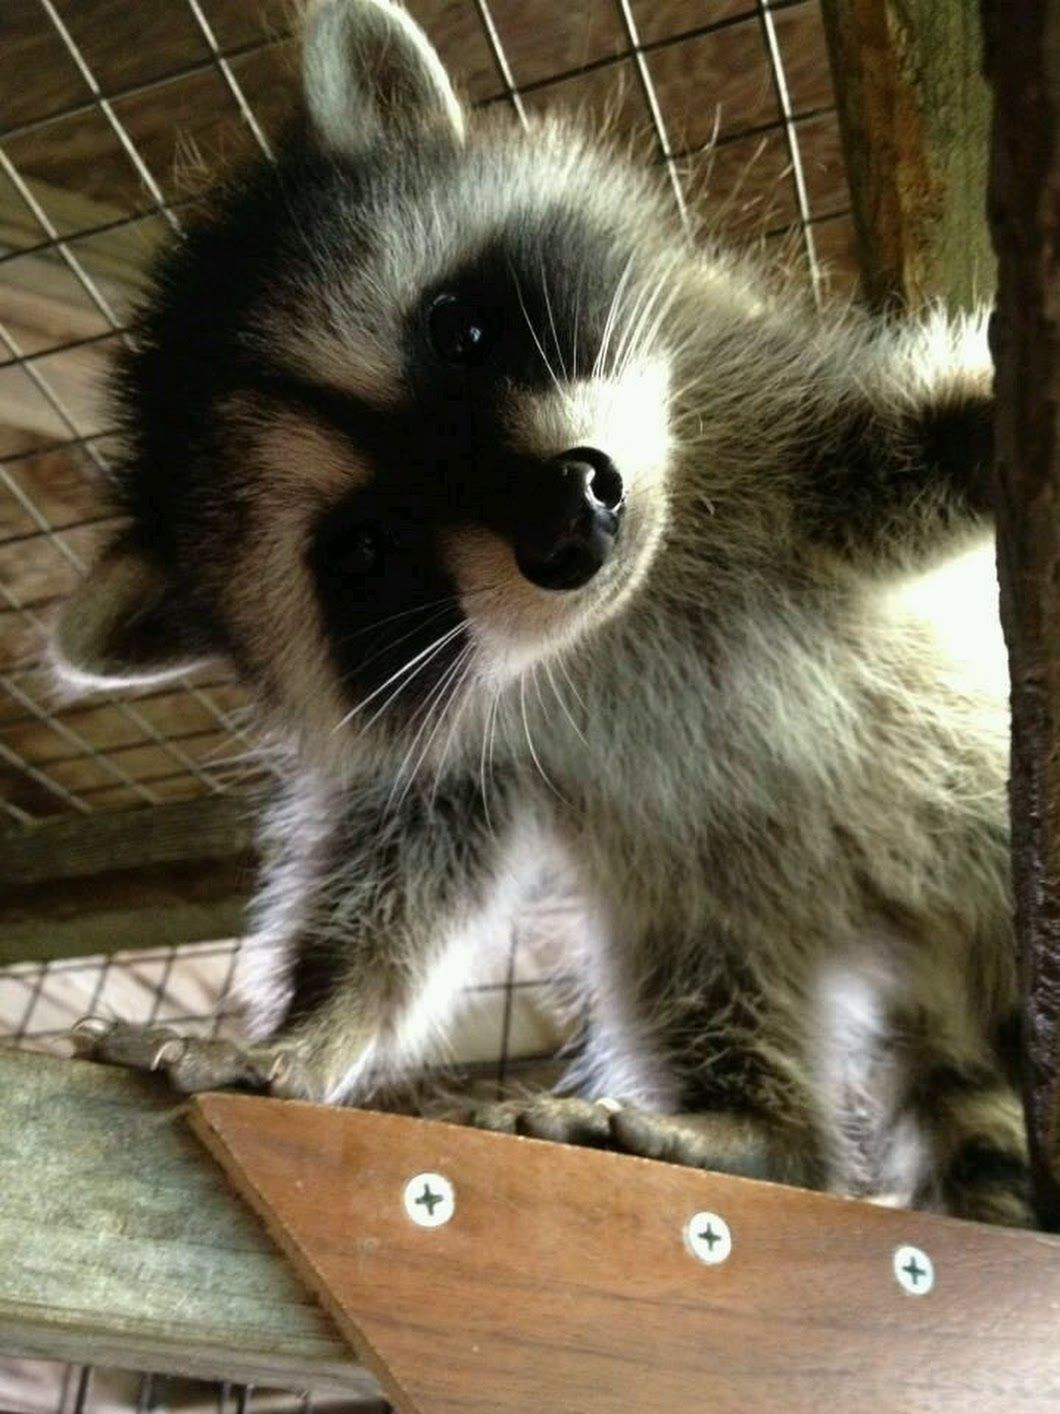 Scary Face Racoon likes keeping people hostage. | Cute stuff ...